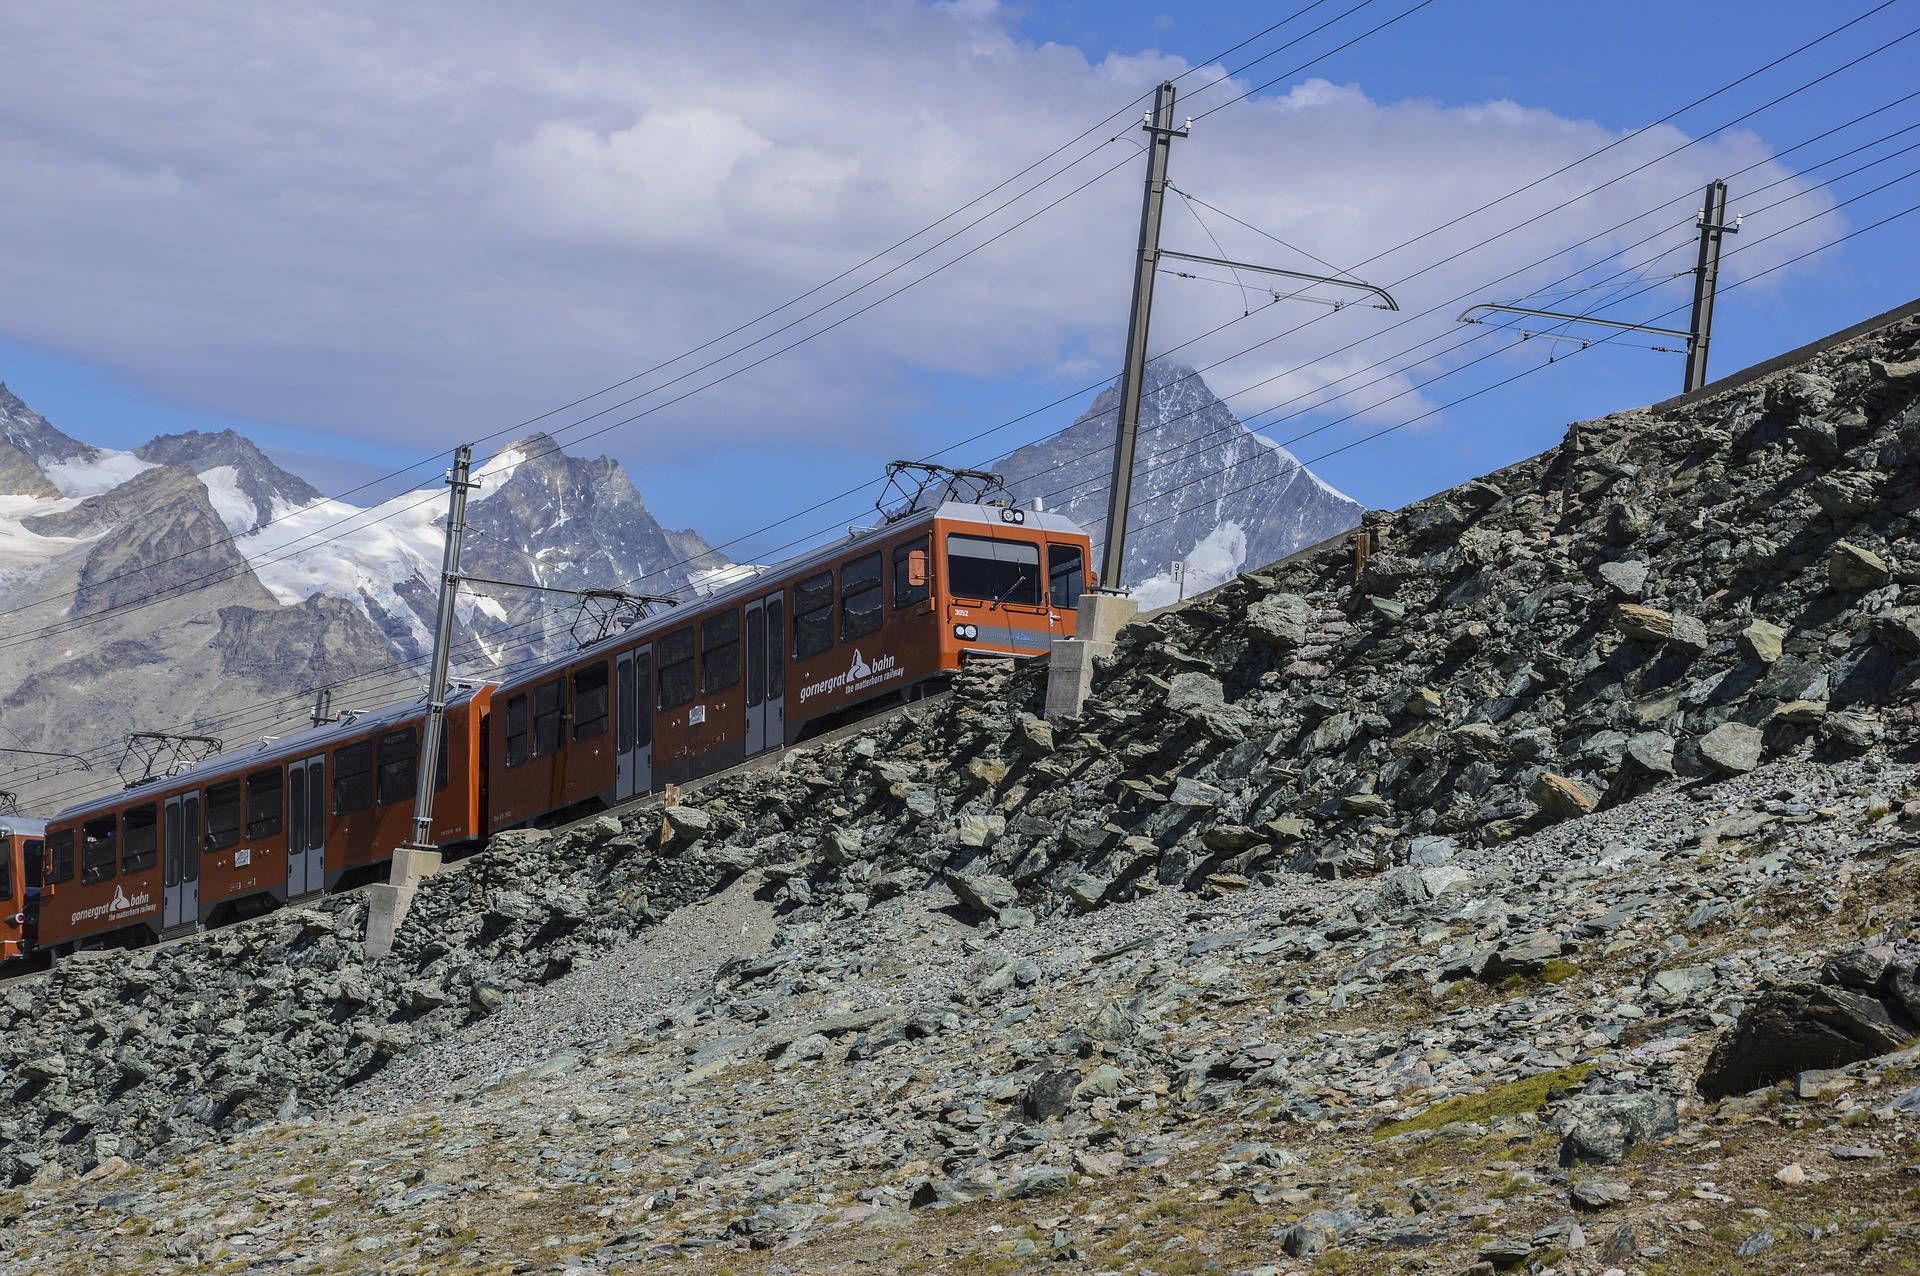 gornergrat-2706098_1920_web